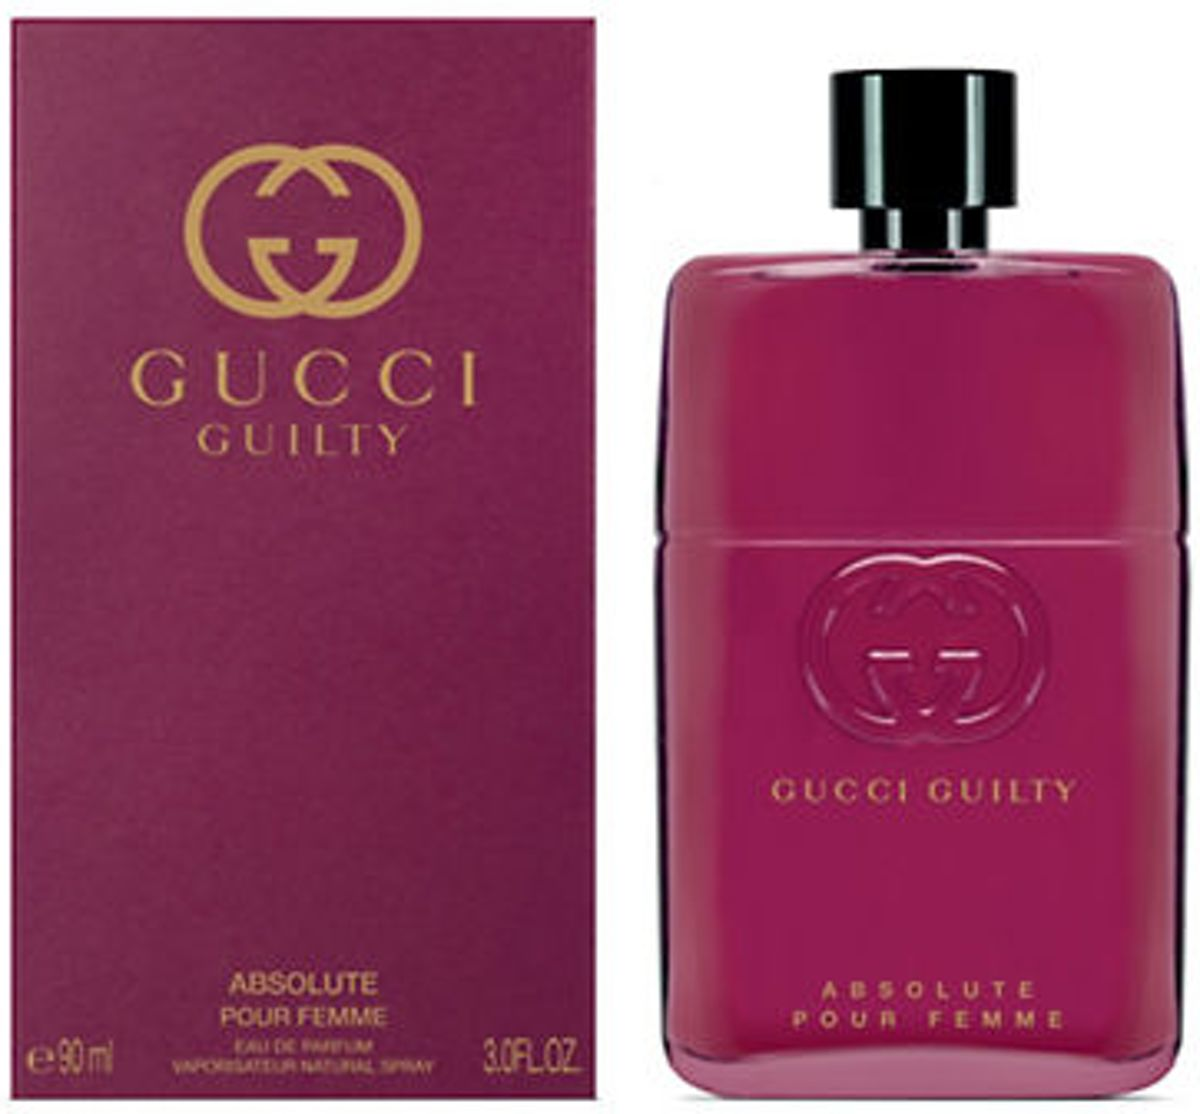 Gucci Guilty Absolute Pour Femme Eau de Parfum Spray 90 ml